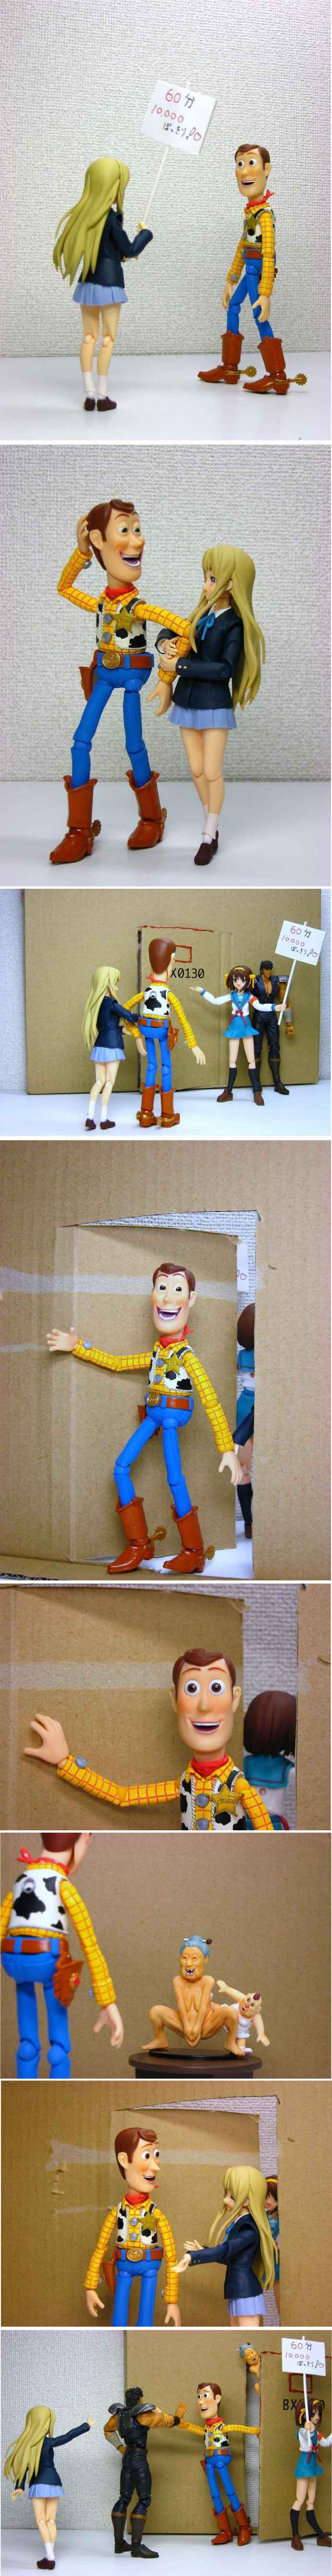 woody-attacks-036.jpg